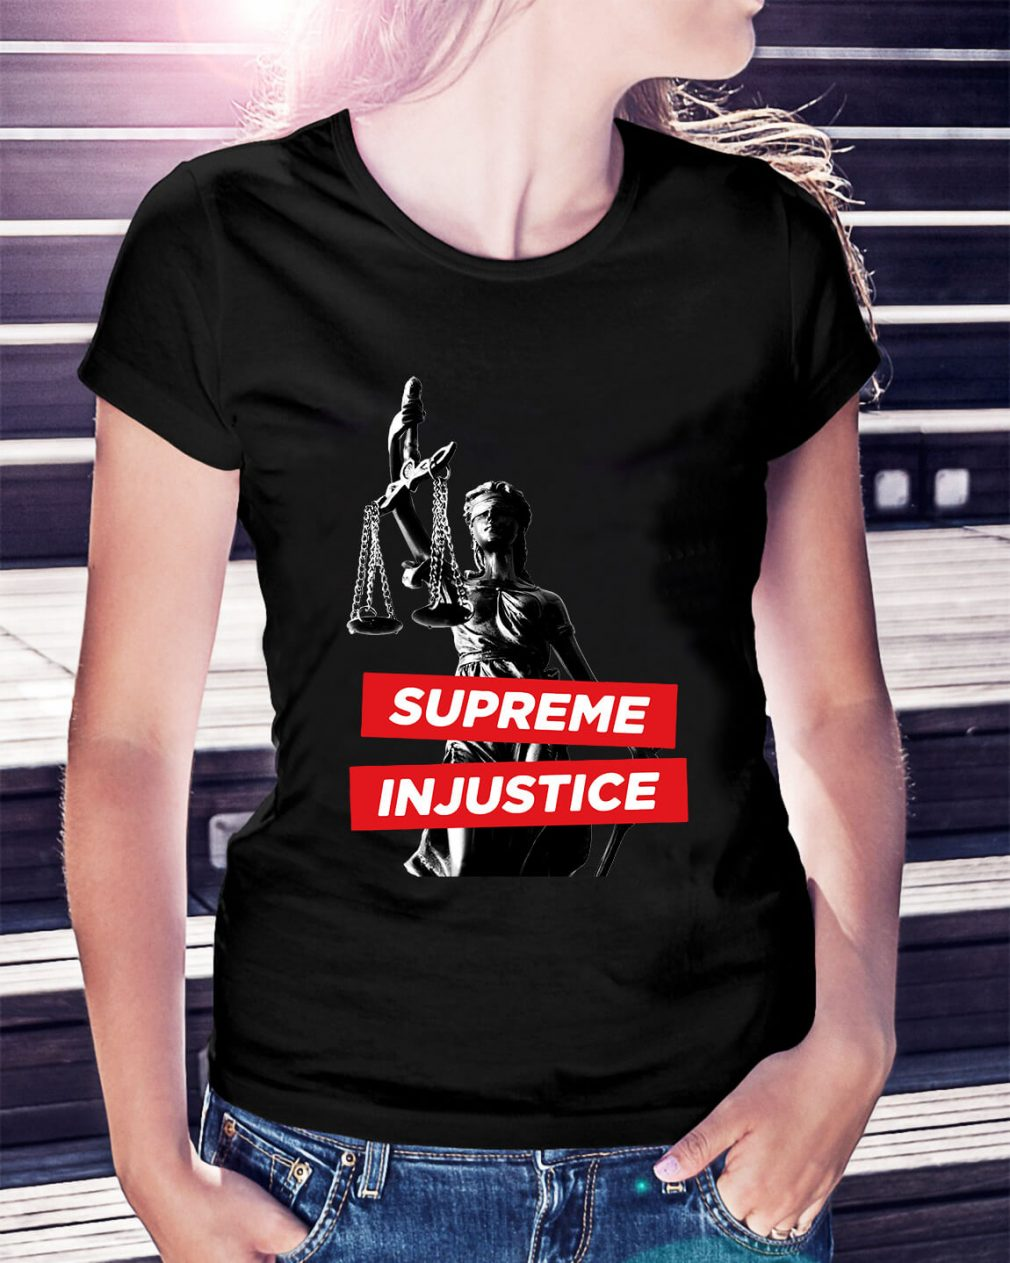 Supreme Injustice Ladies Tee